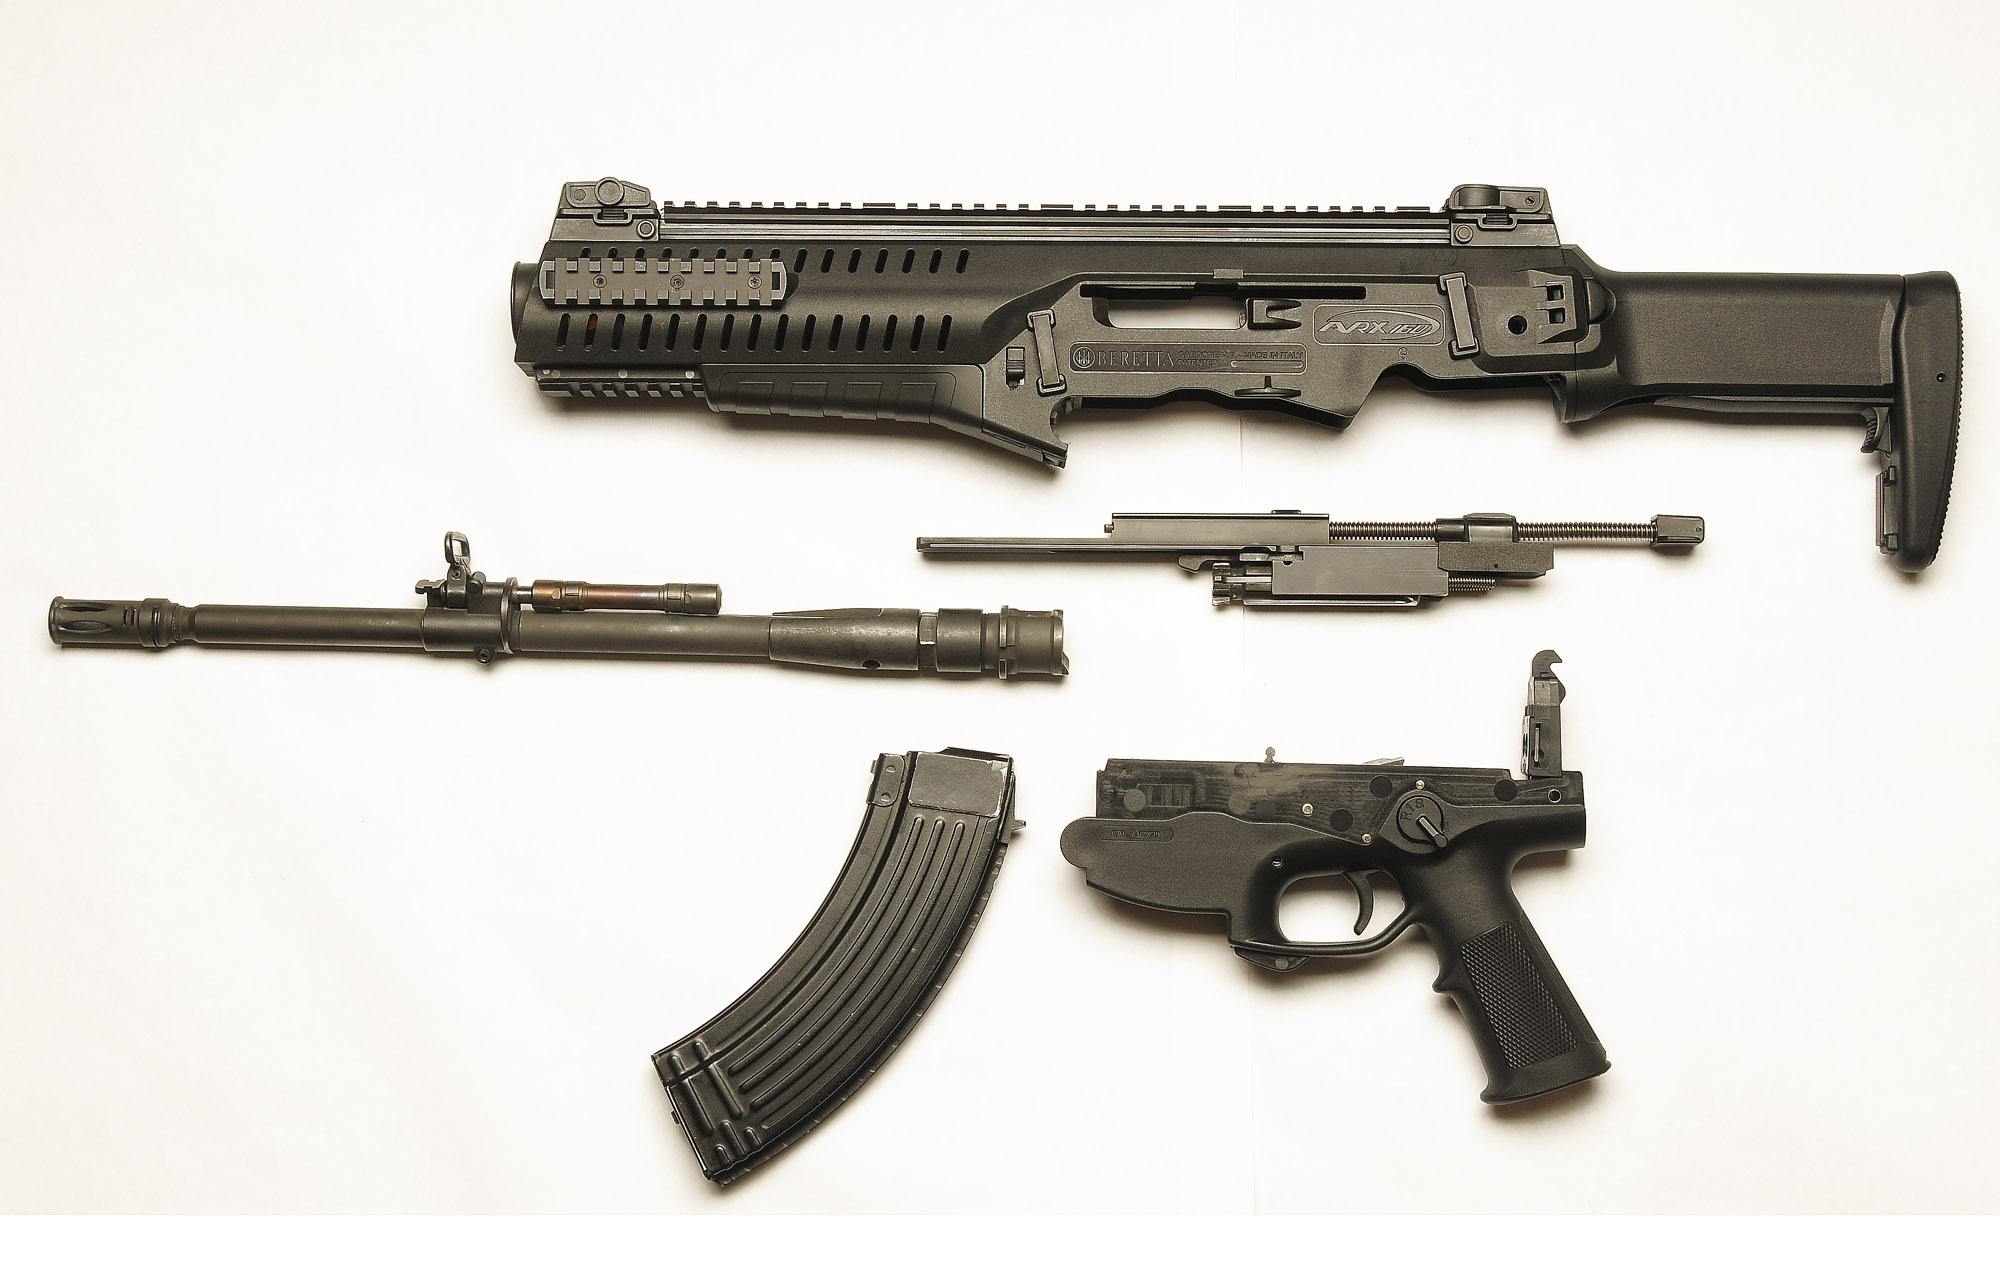 The Soviet 7.62 caliber ARX-160, field disassembled. The three main subassemblies for the conversion in the Soviet chambering are barrel, magazine well and bolt carrier assembly. Plus, of course, an AK/AKM magazine...